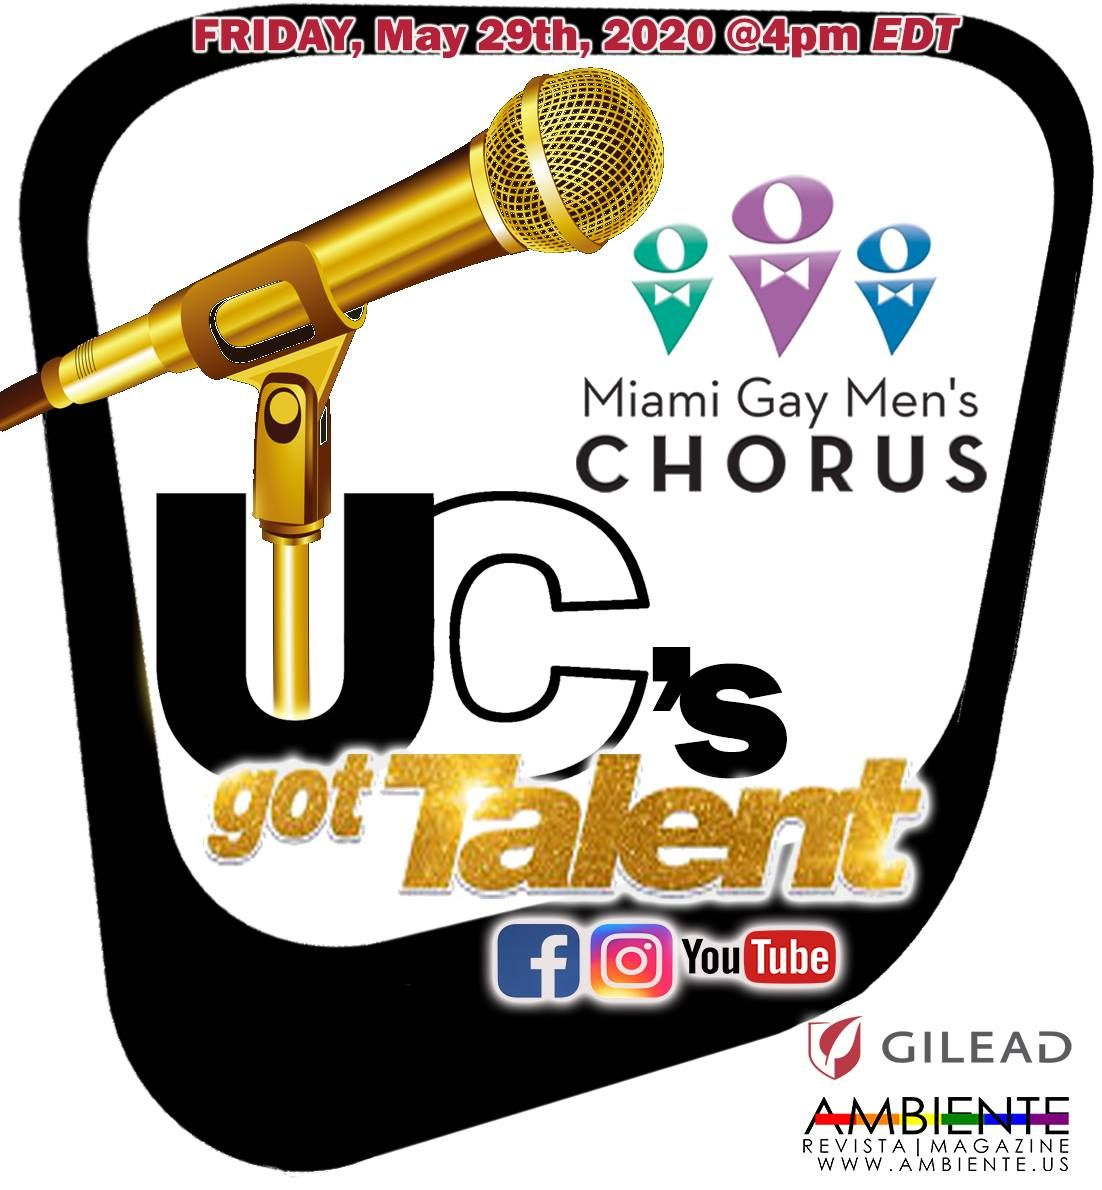 Catch us on UCTV live this Friday, May 29, 2020 at 4pm ET. Check http://tiny.cc/UCTVYouTube and subscribe to their channel. See you Friday! . #coralgables #gaymiami #glbt #glbtq #lesbian #lgbt #lgbtq #love #miami #miamibeach #miamigay #miamigaychorus #queer #sing #singer #singerspic.twitter.com/EQBZSVTSCp